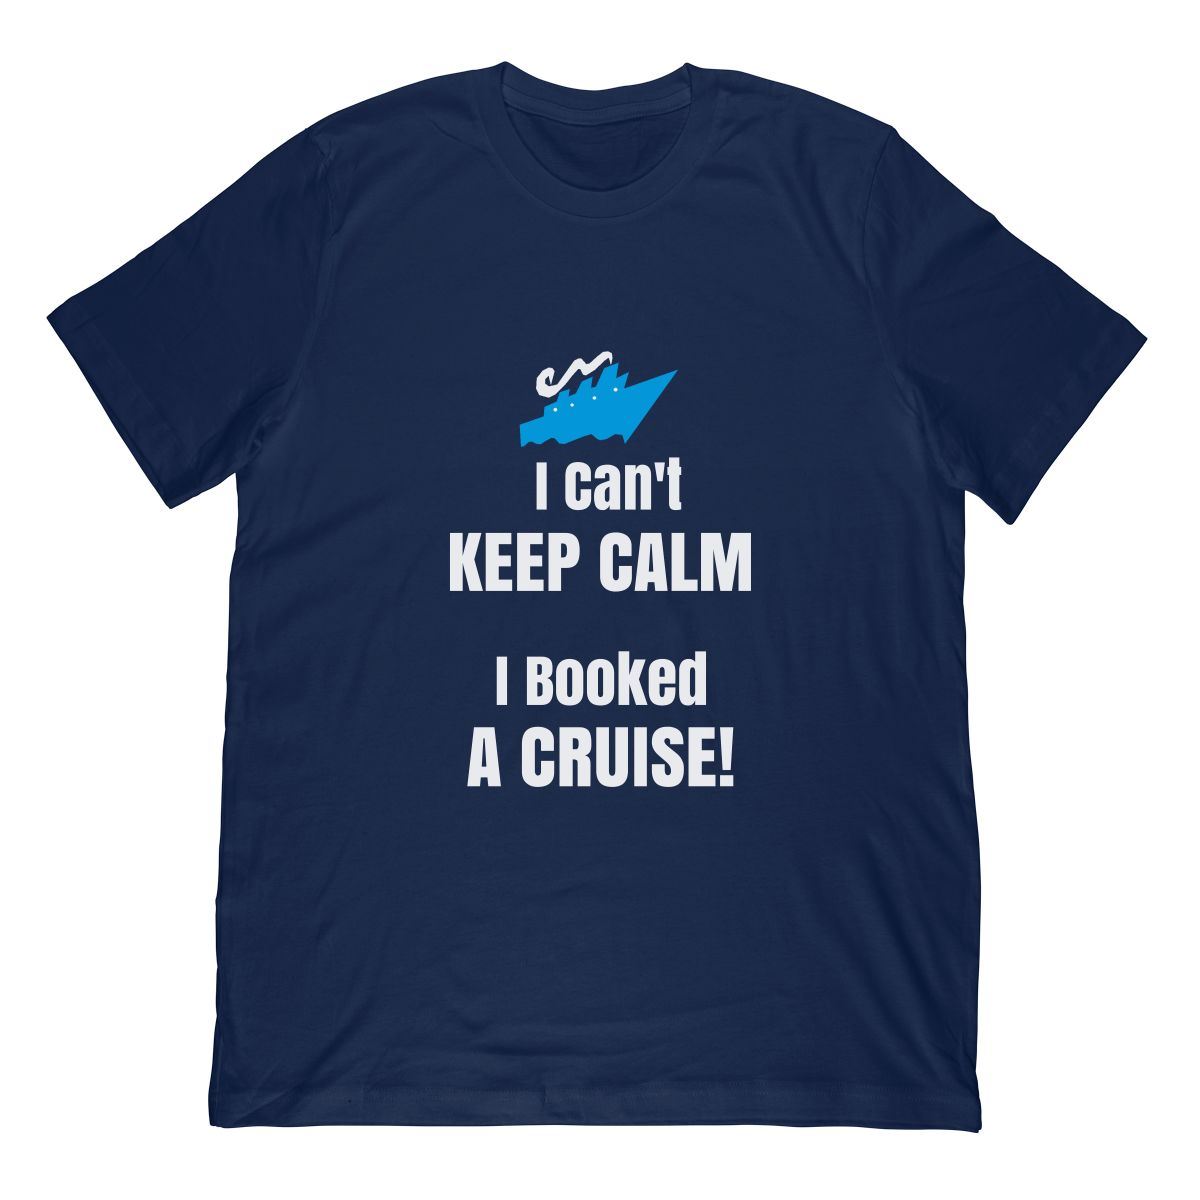 Funny Cruise Shirt I Cant Keep Calm I Booked A Cruise Ship